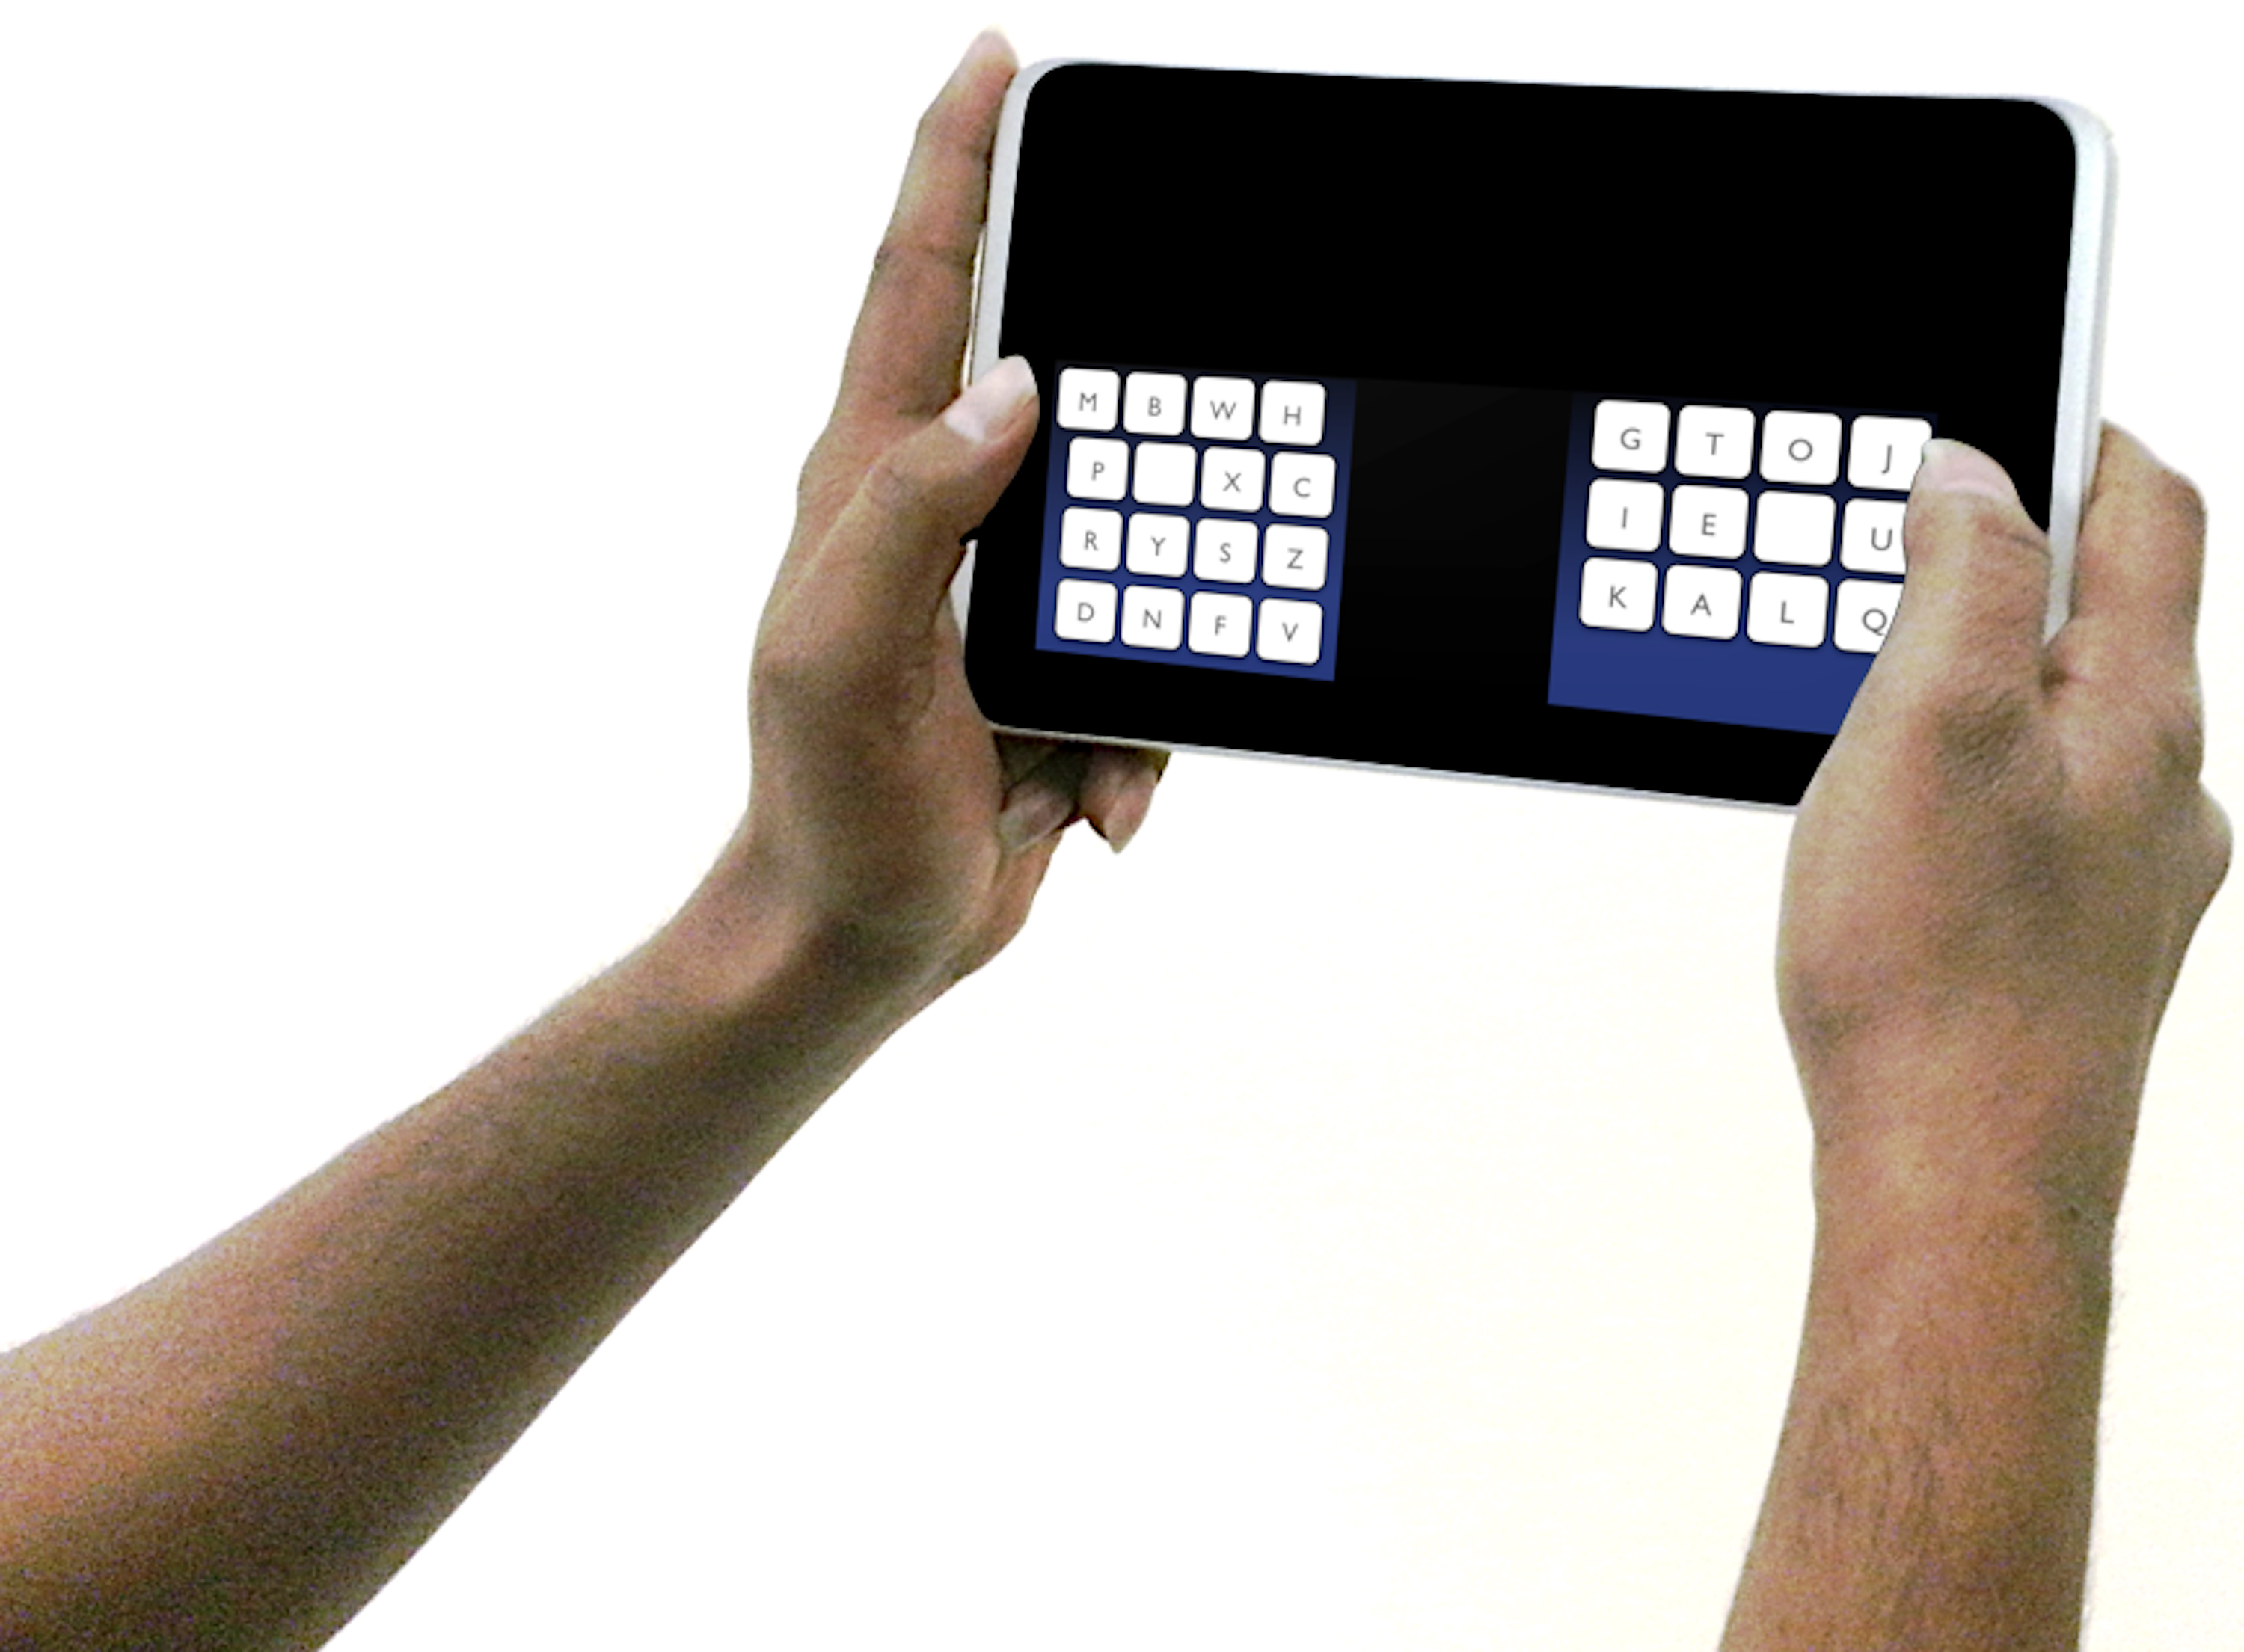 This Is the New, Non-QWERTY Keyboard You Will Use to Compose